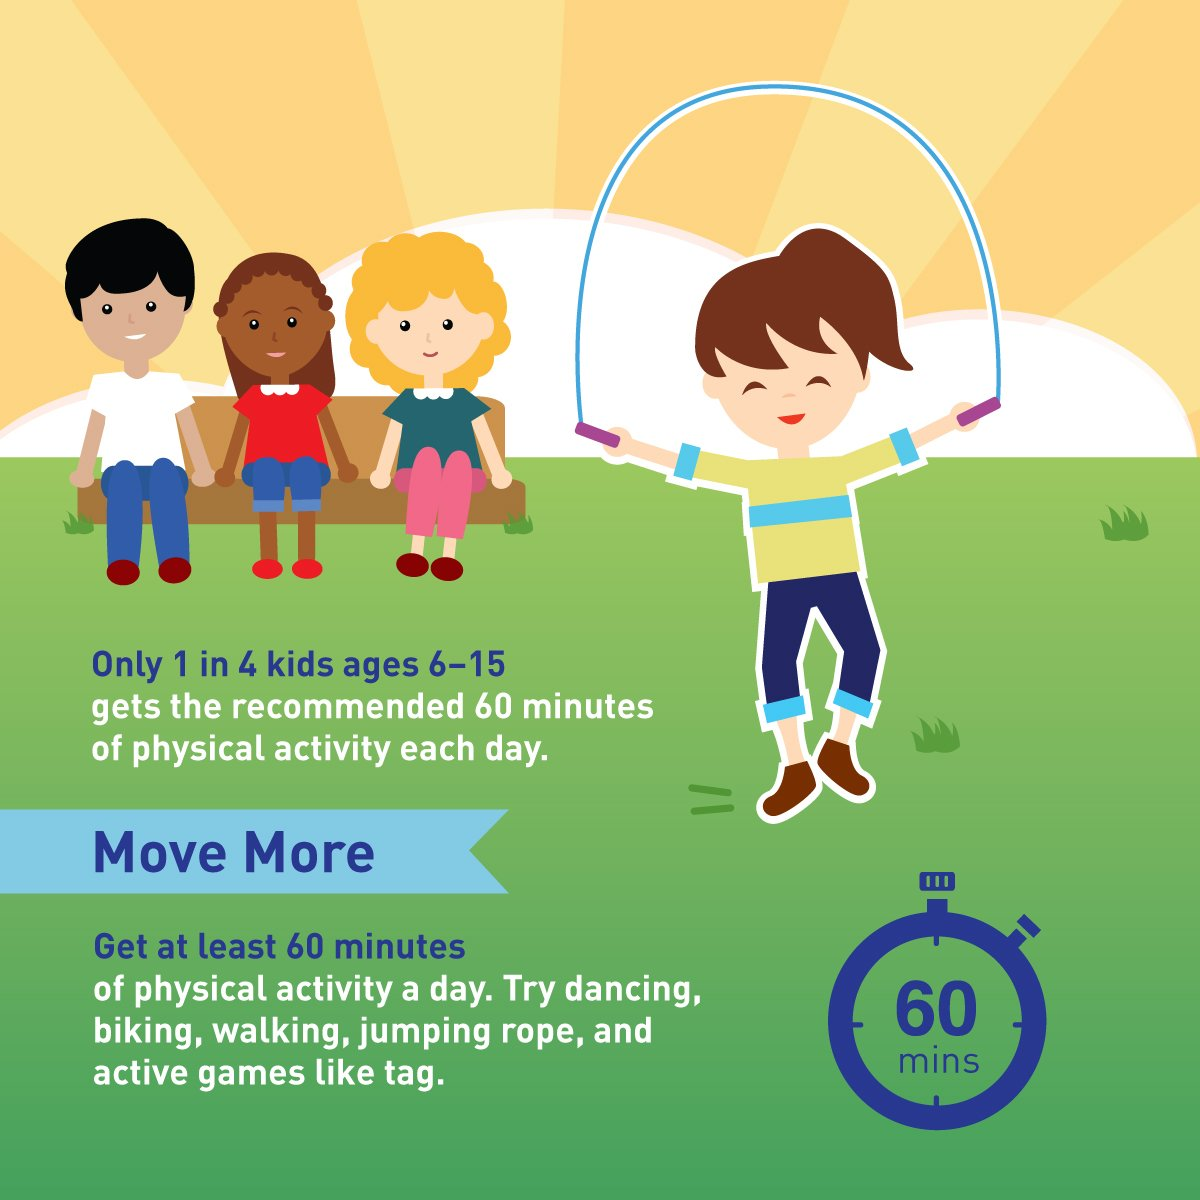 Move more. Sit less. Kids need at least 60 minutes of physical activity each day. #WorldHealthDay https://t.co/QZQtpPVpij